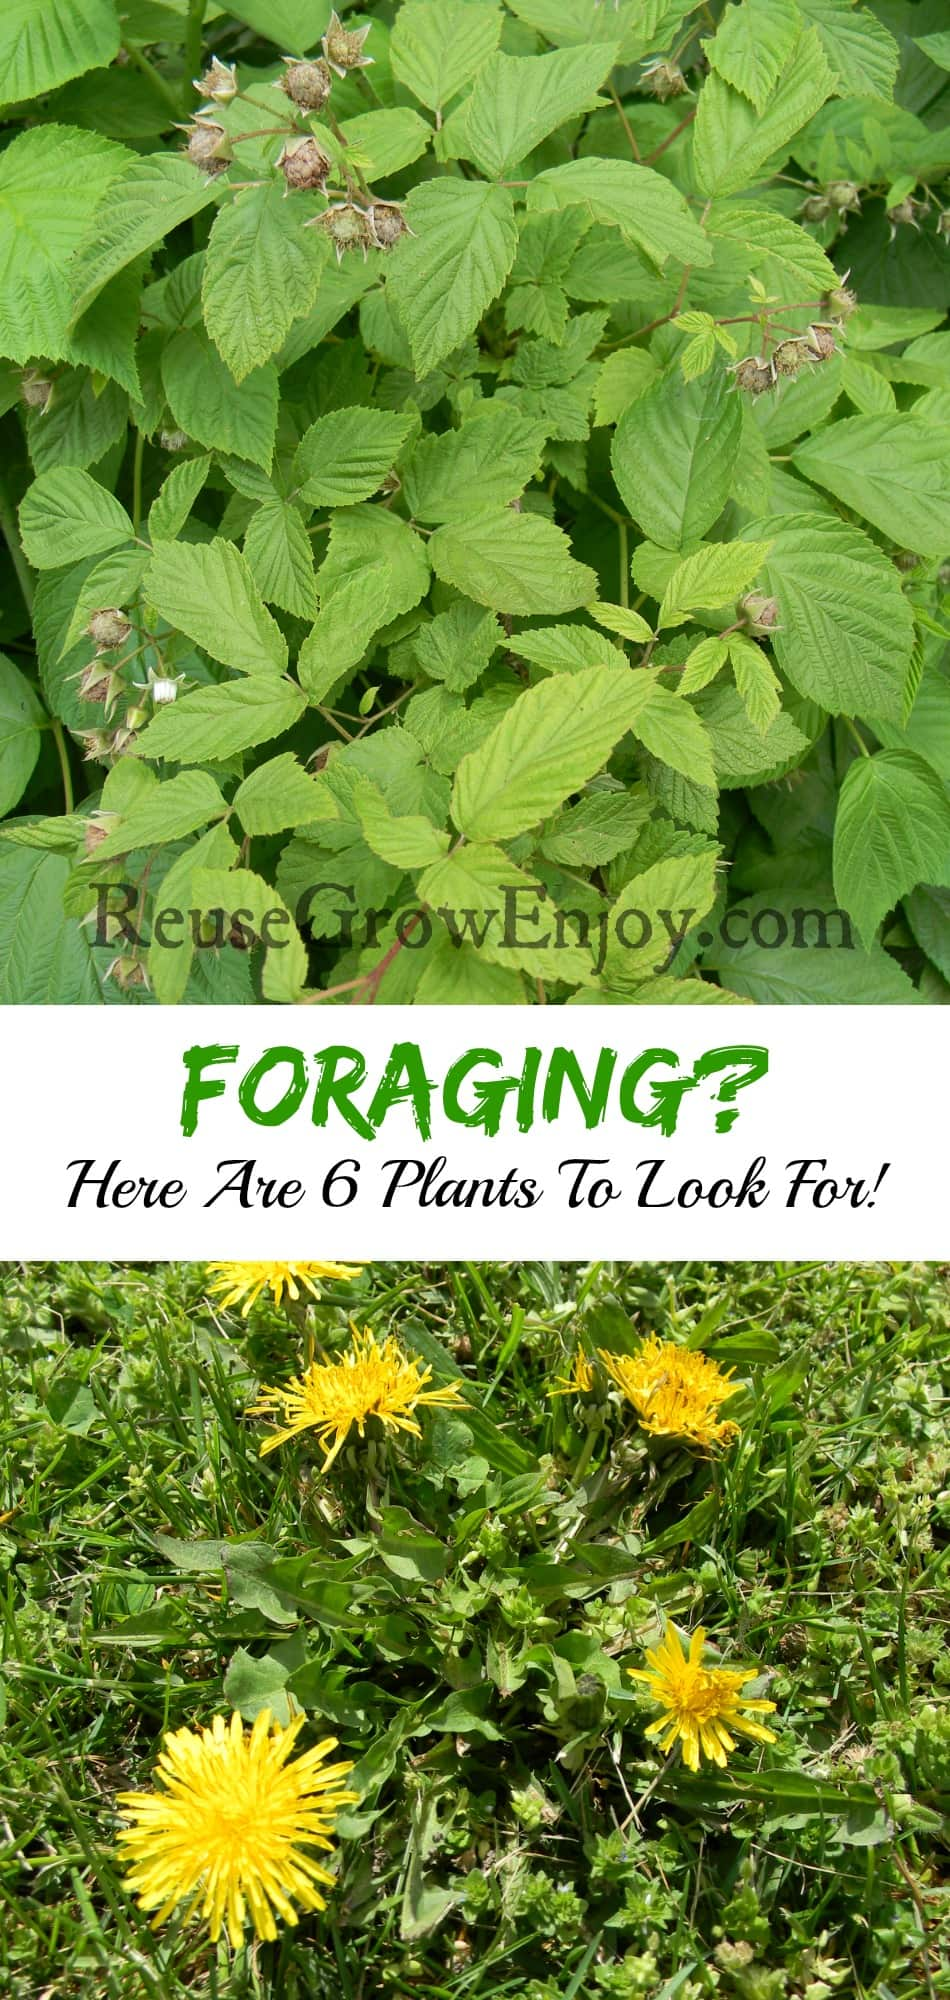 Foraging Here Are 6 Plants To Look For